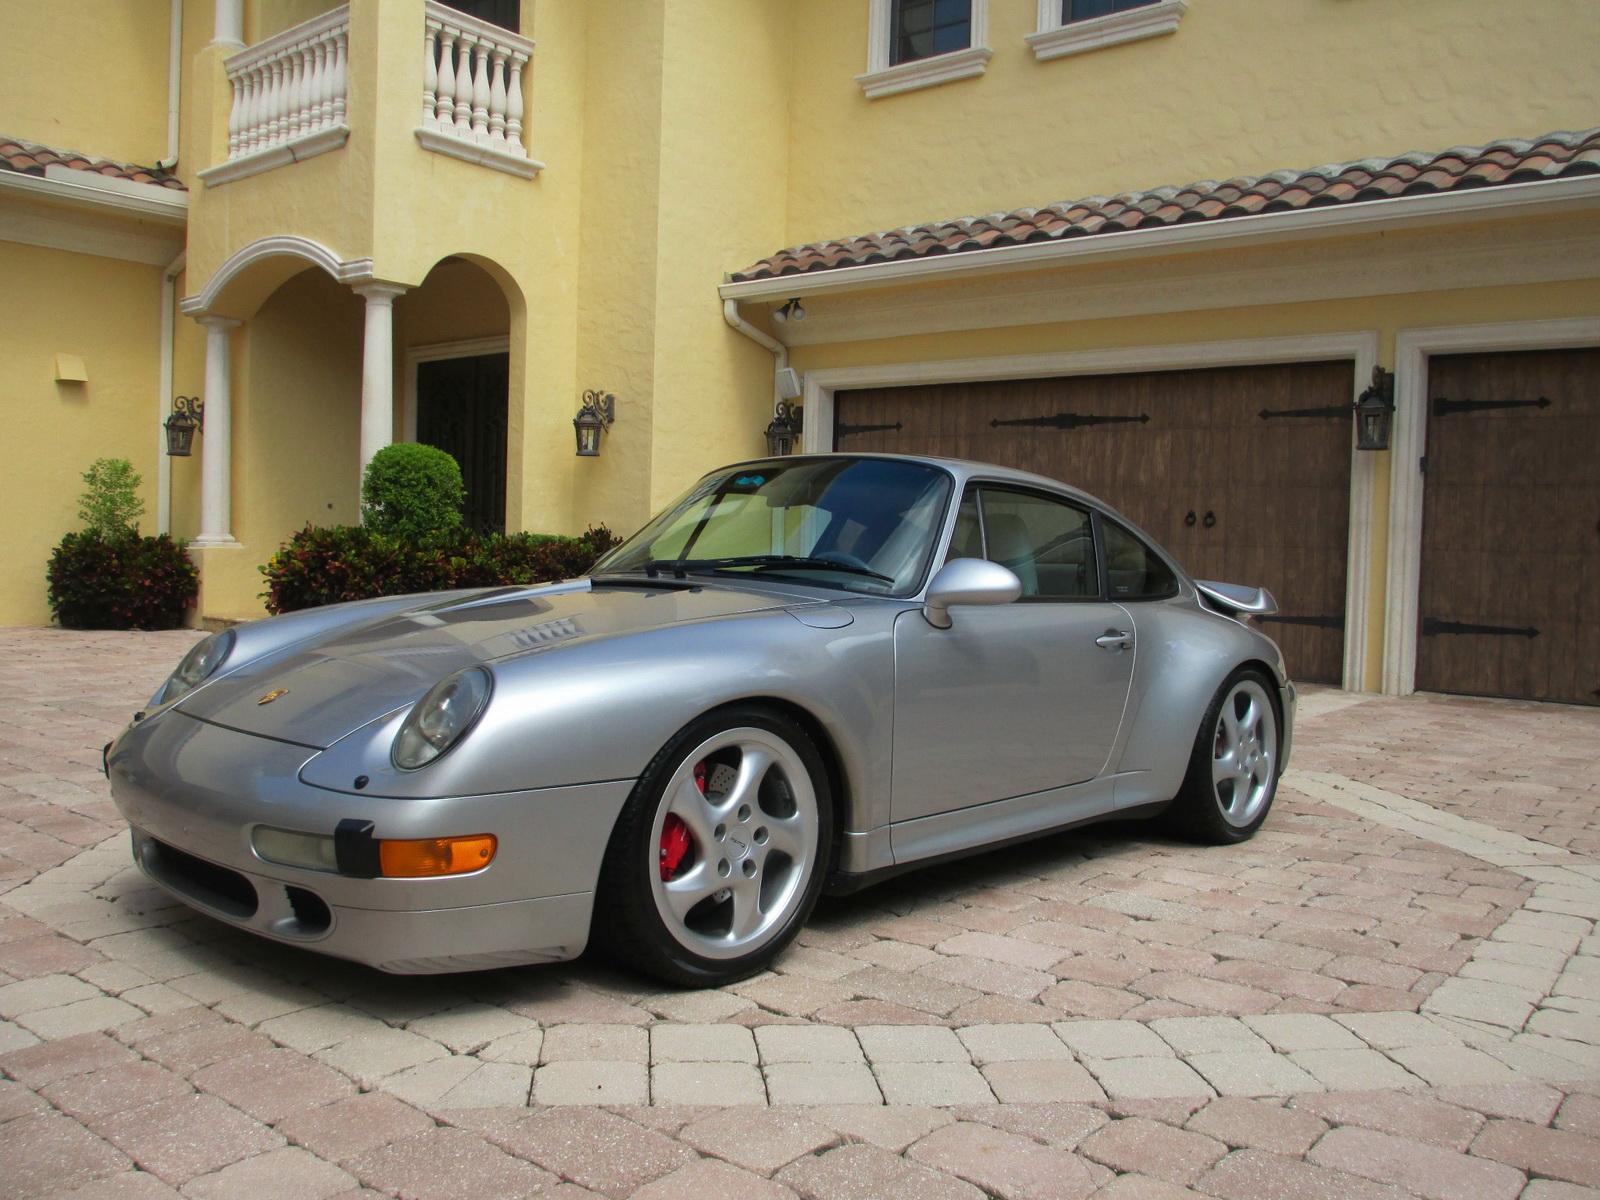 Drop Dead Gorgeous Porsche 993 Turbo Is Up For Sale With Under 20k Miles Carscoops